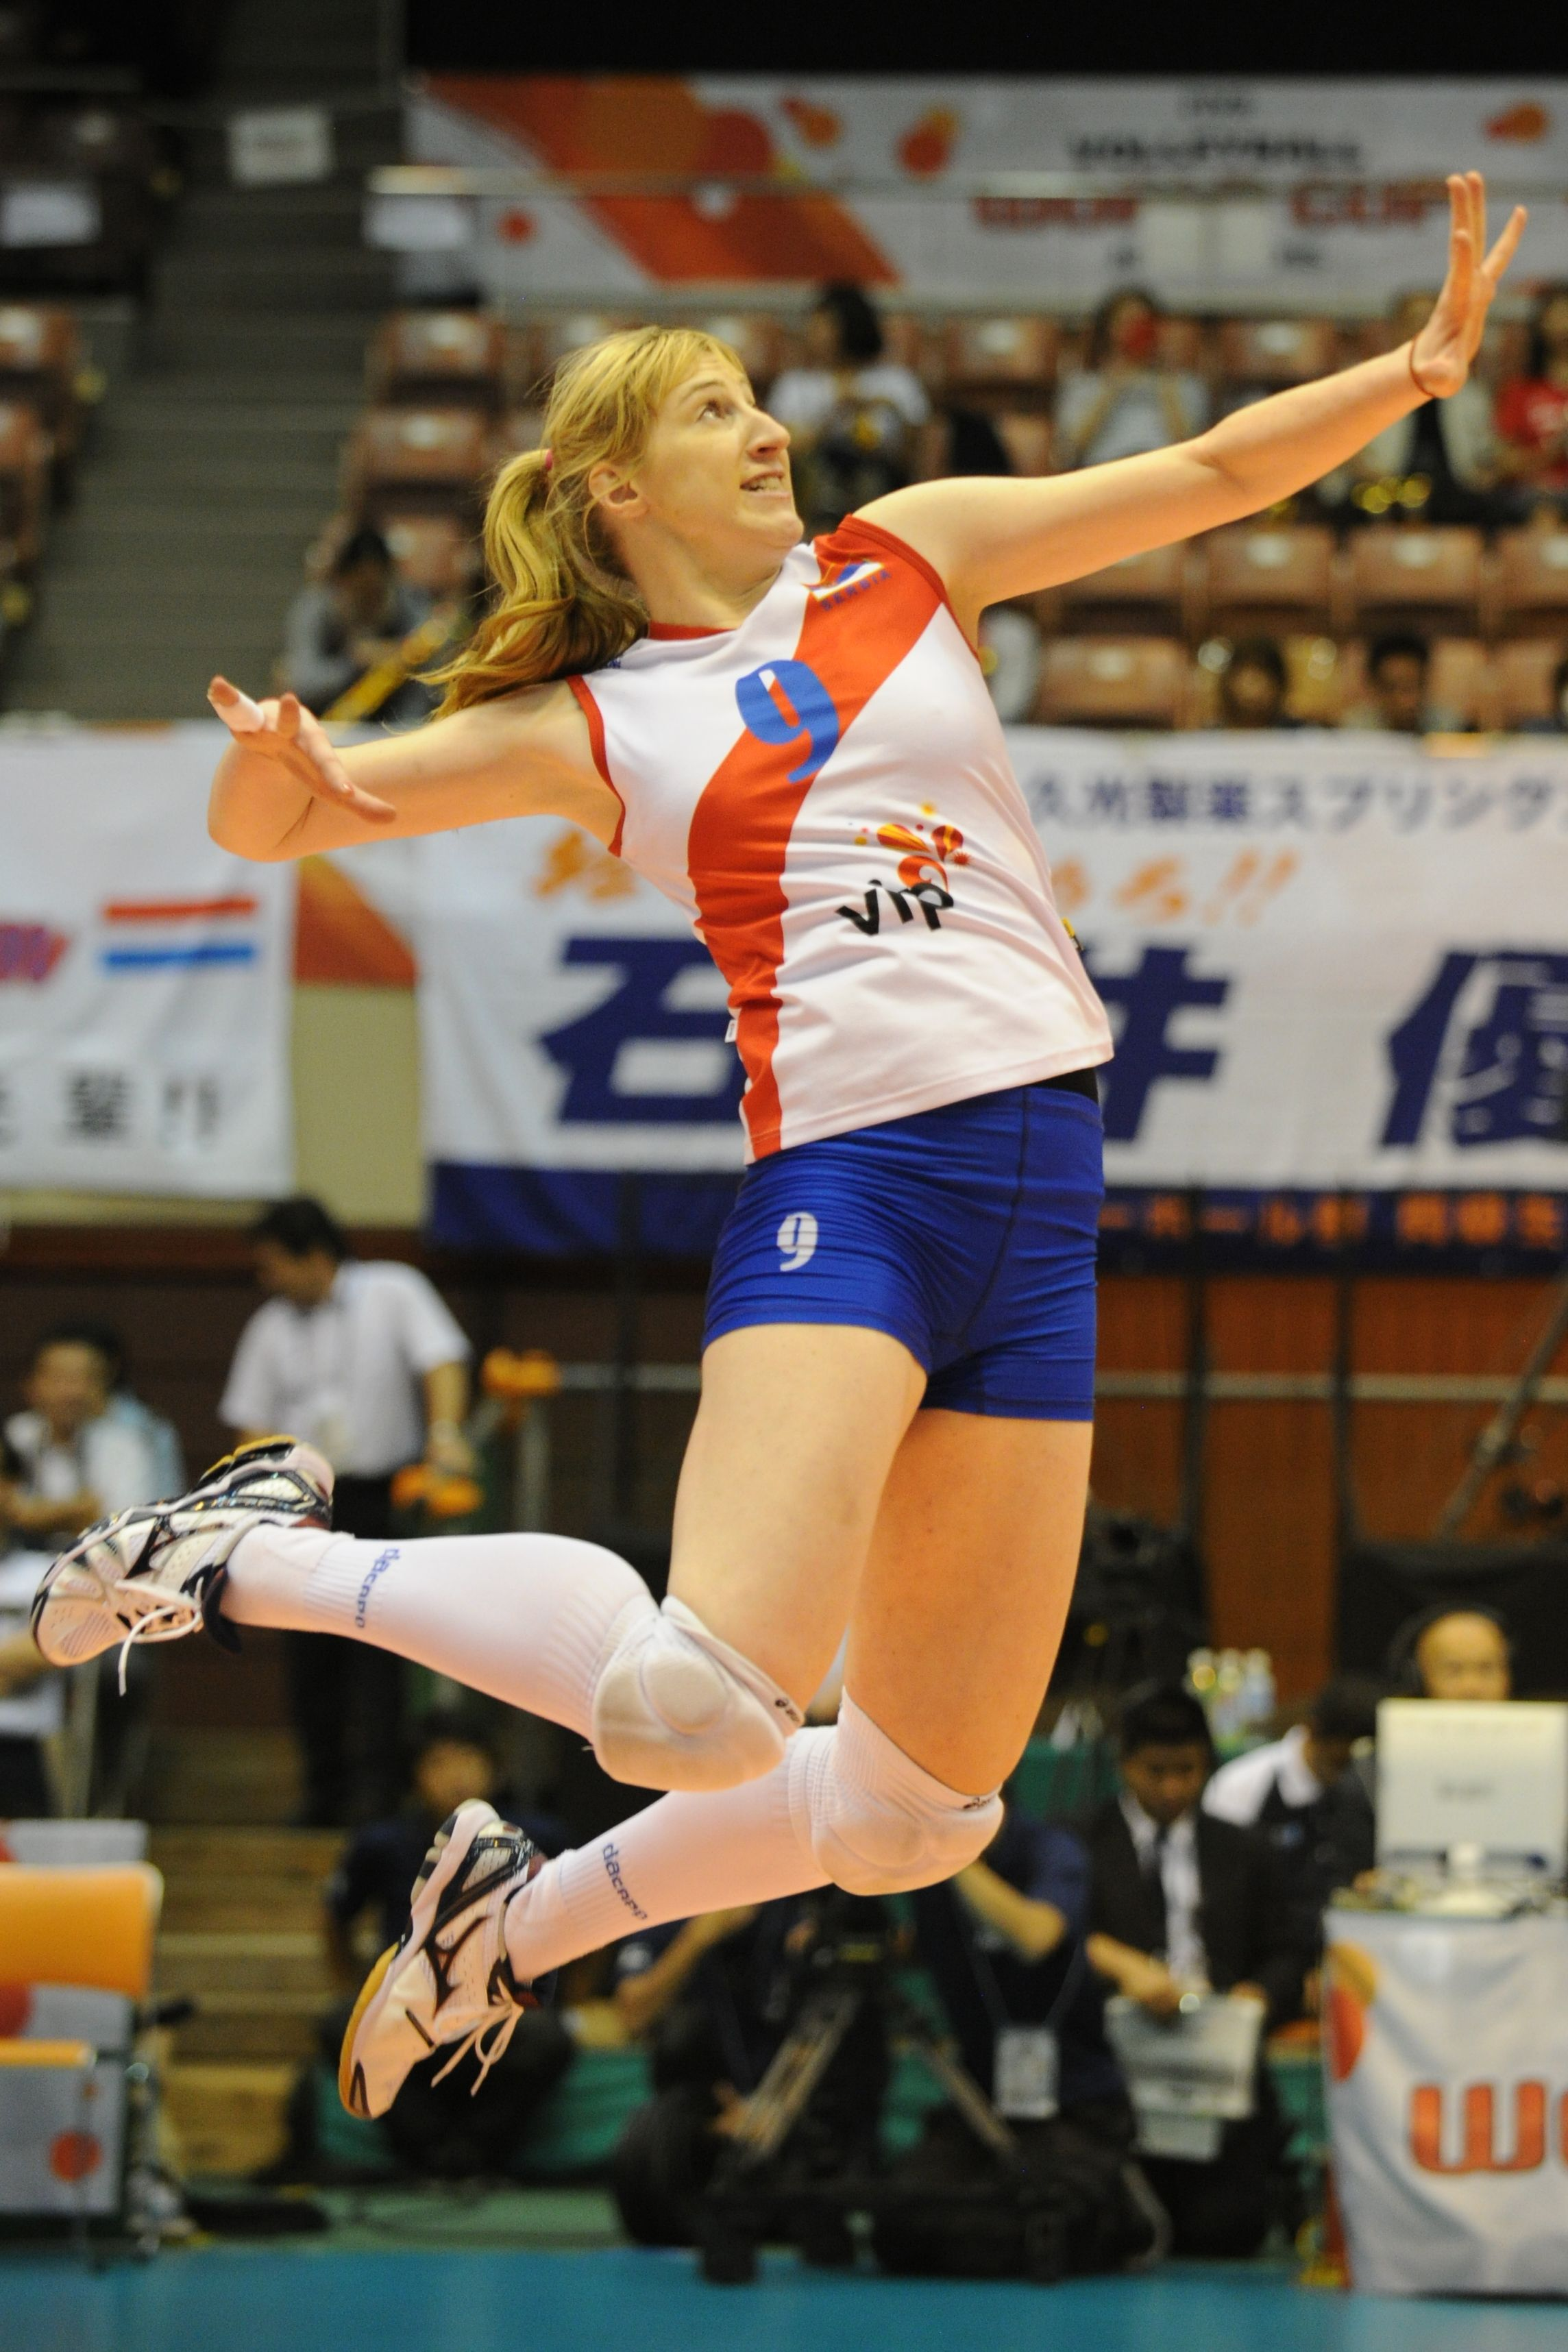 Brankica Mihajlovic Serbian Wing Spiker Fivb Female Volleyball Players Women Volleyball Volleyball Players